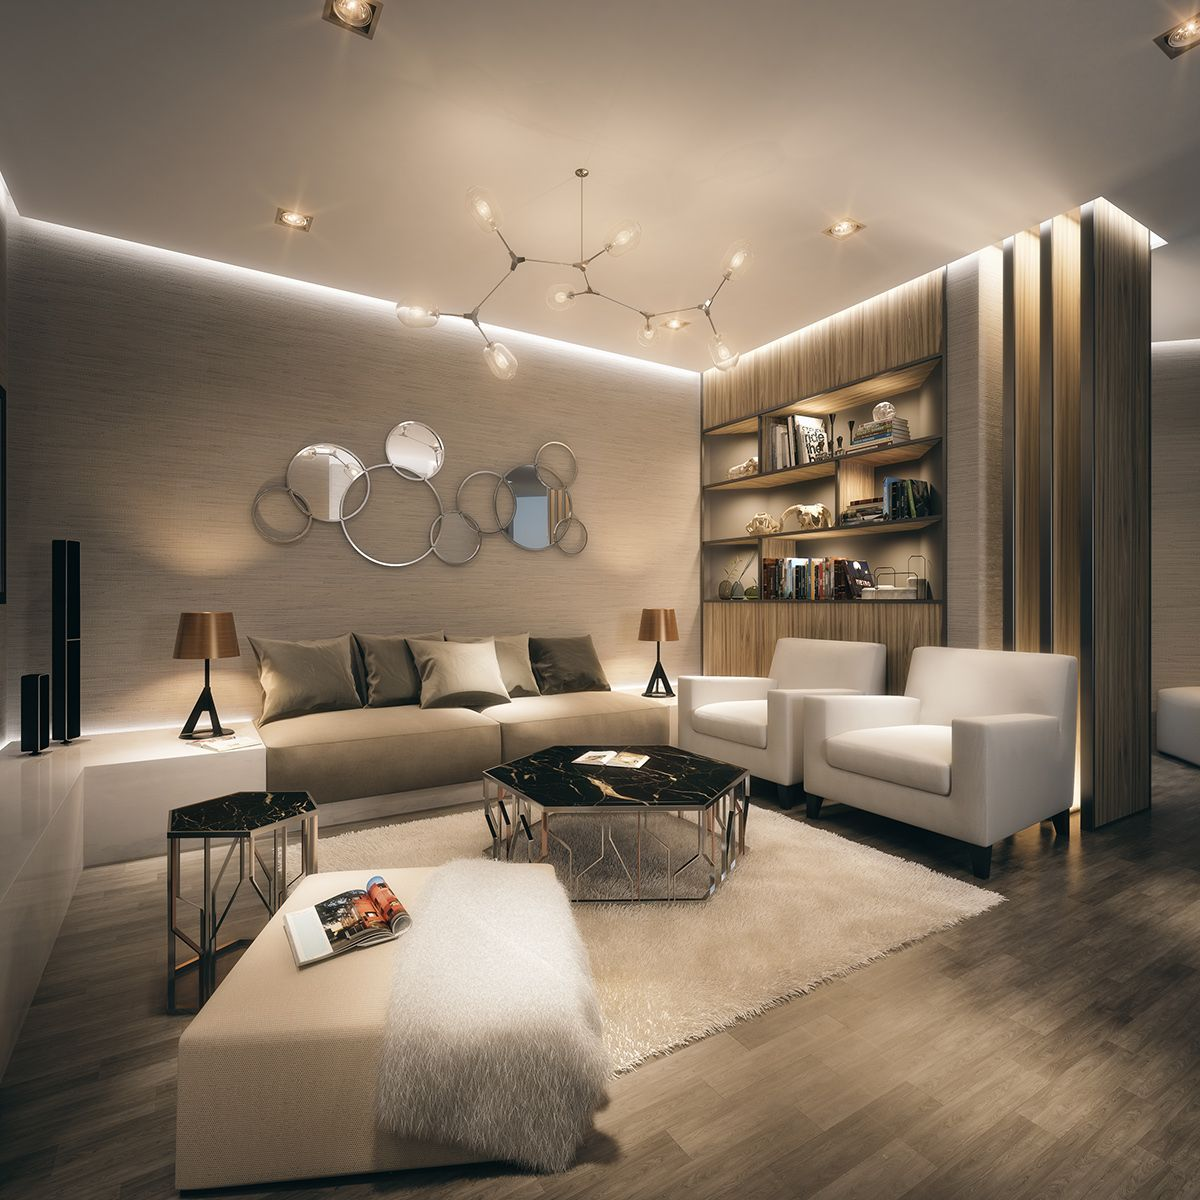 Luxury Homes Interior Decoration Living Room Designs Ideas: Private Luxury Apartments Complex In Western Africa. Full CGI Project Competed In 2014 For Tao